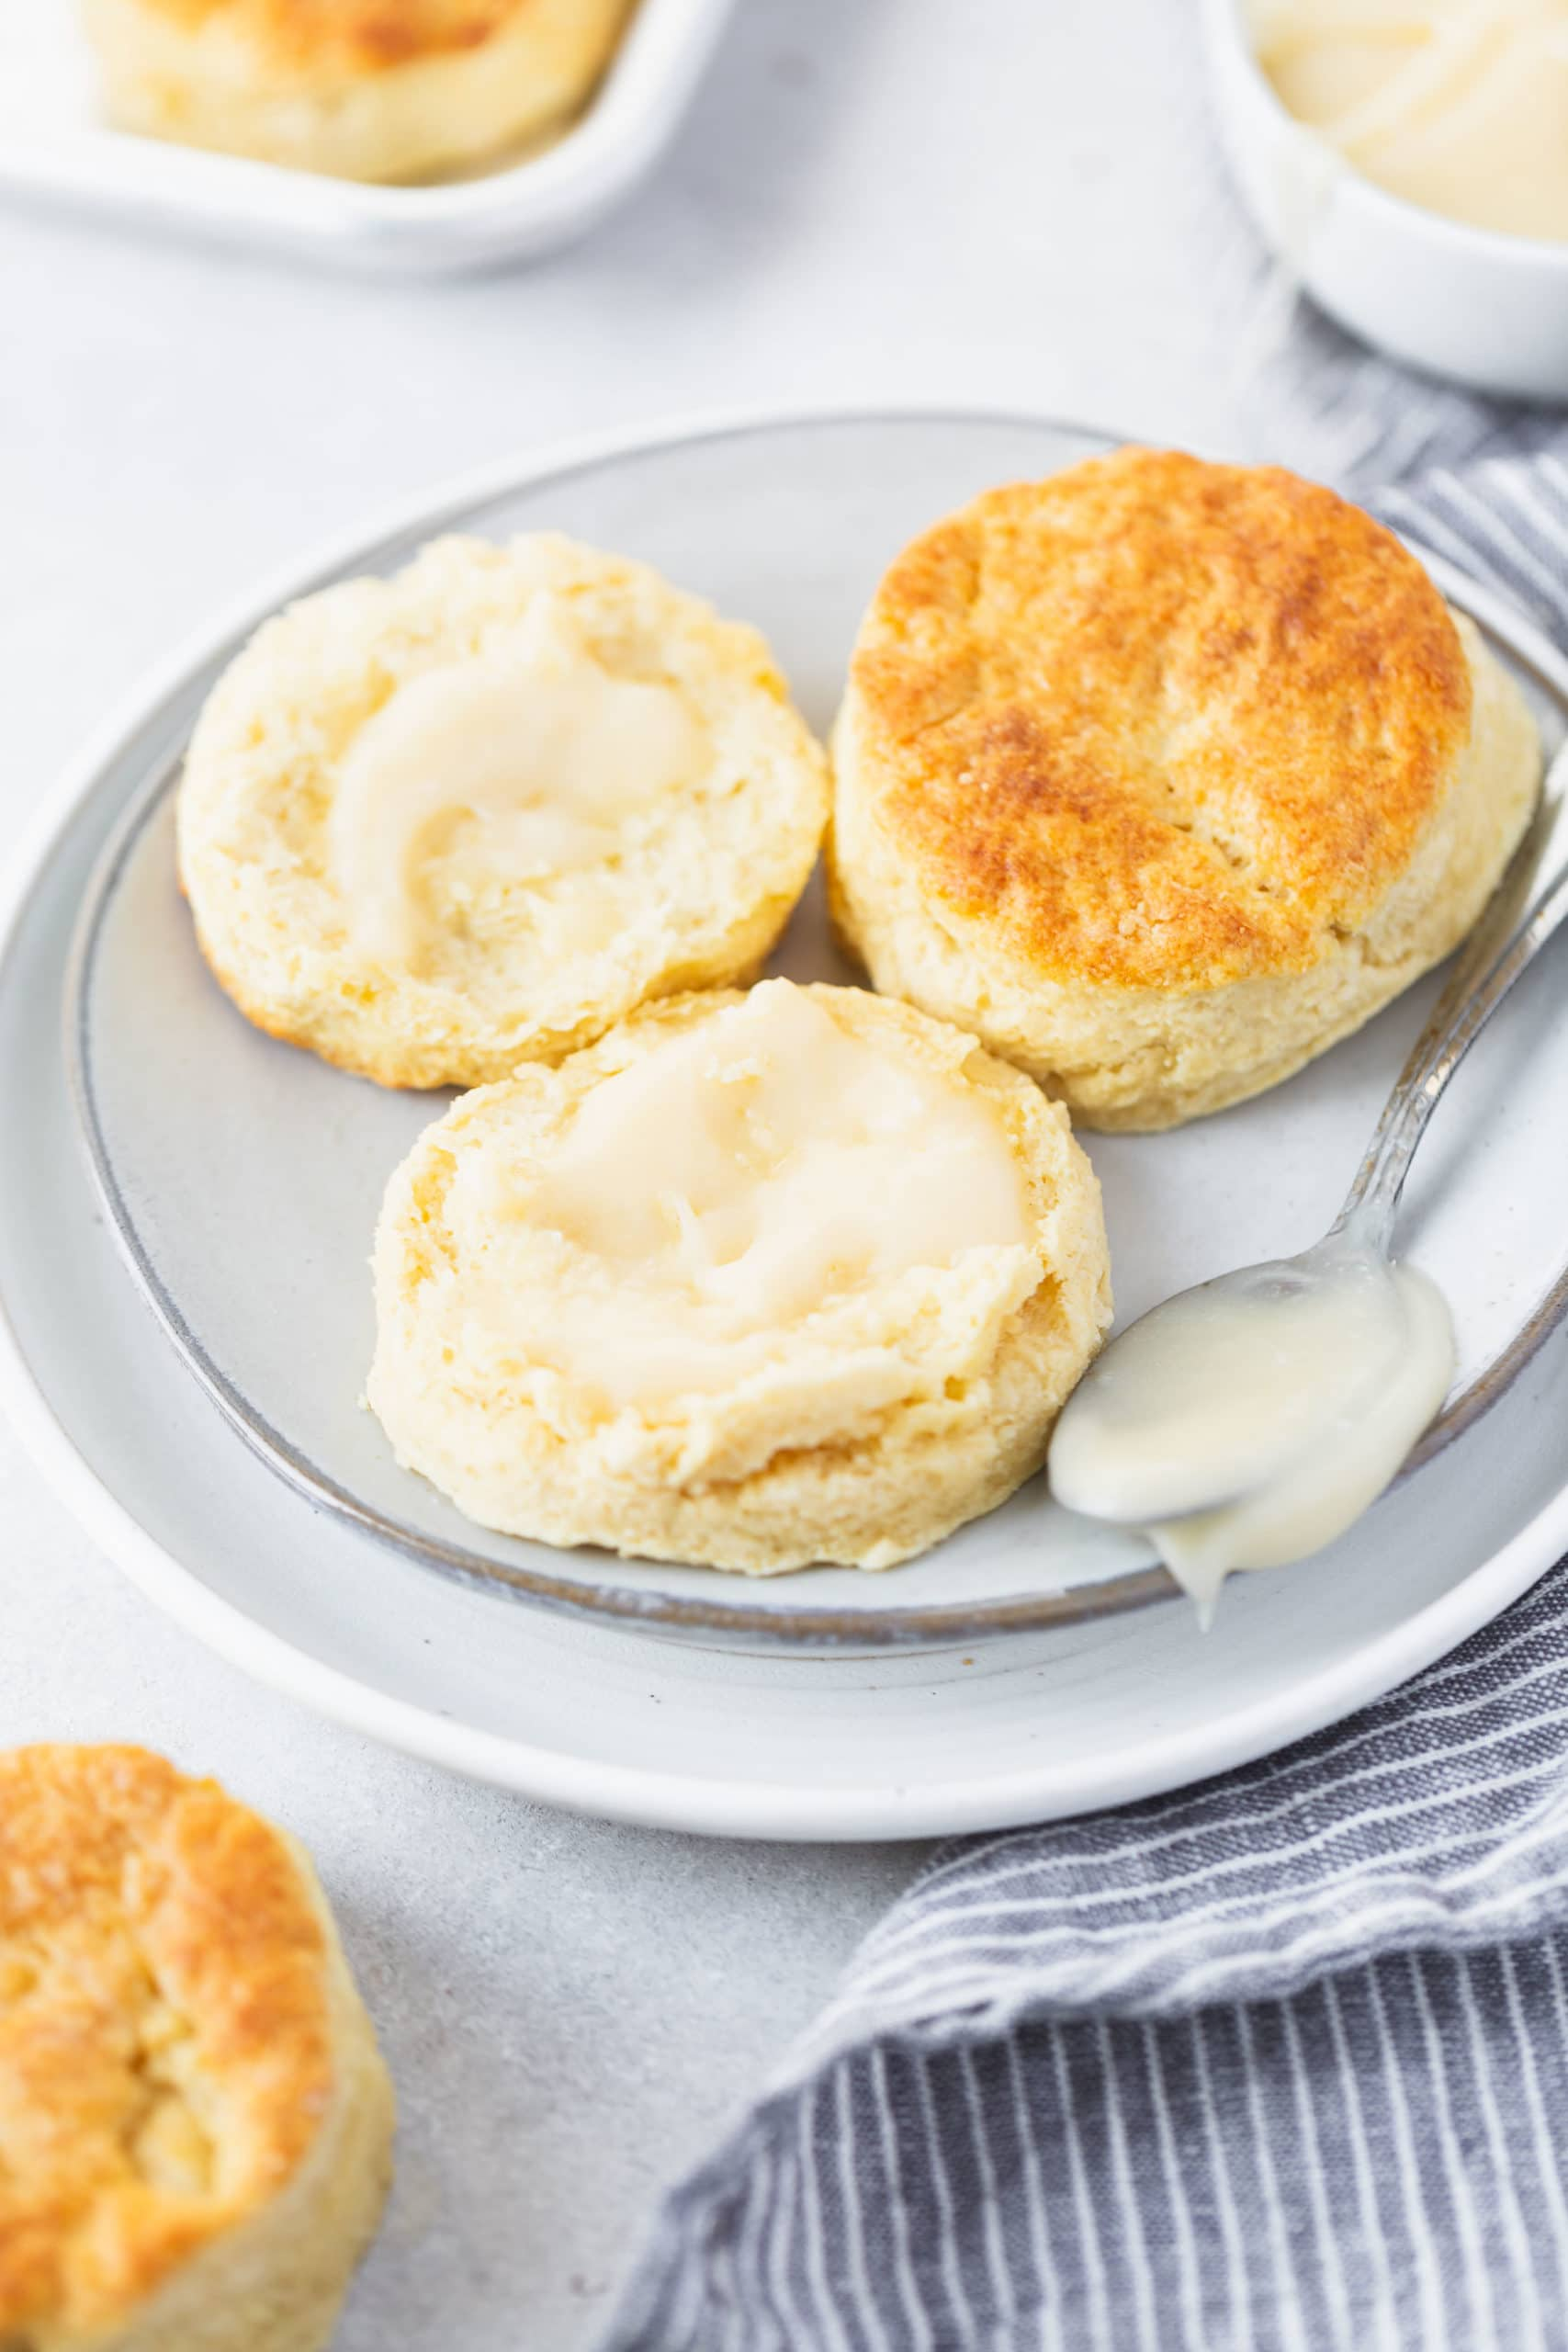 Two buttermilk biscuits on a small white plate. One biscuit is broken in half and has been buttered.